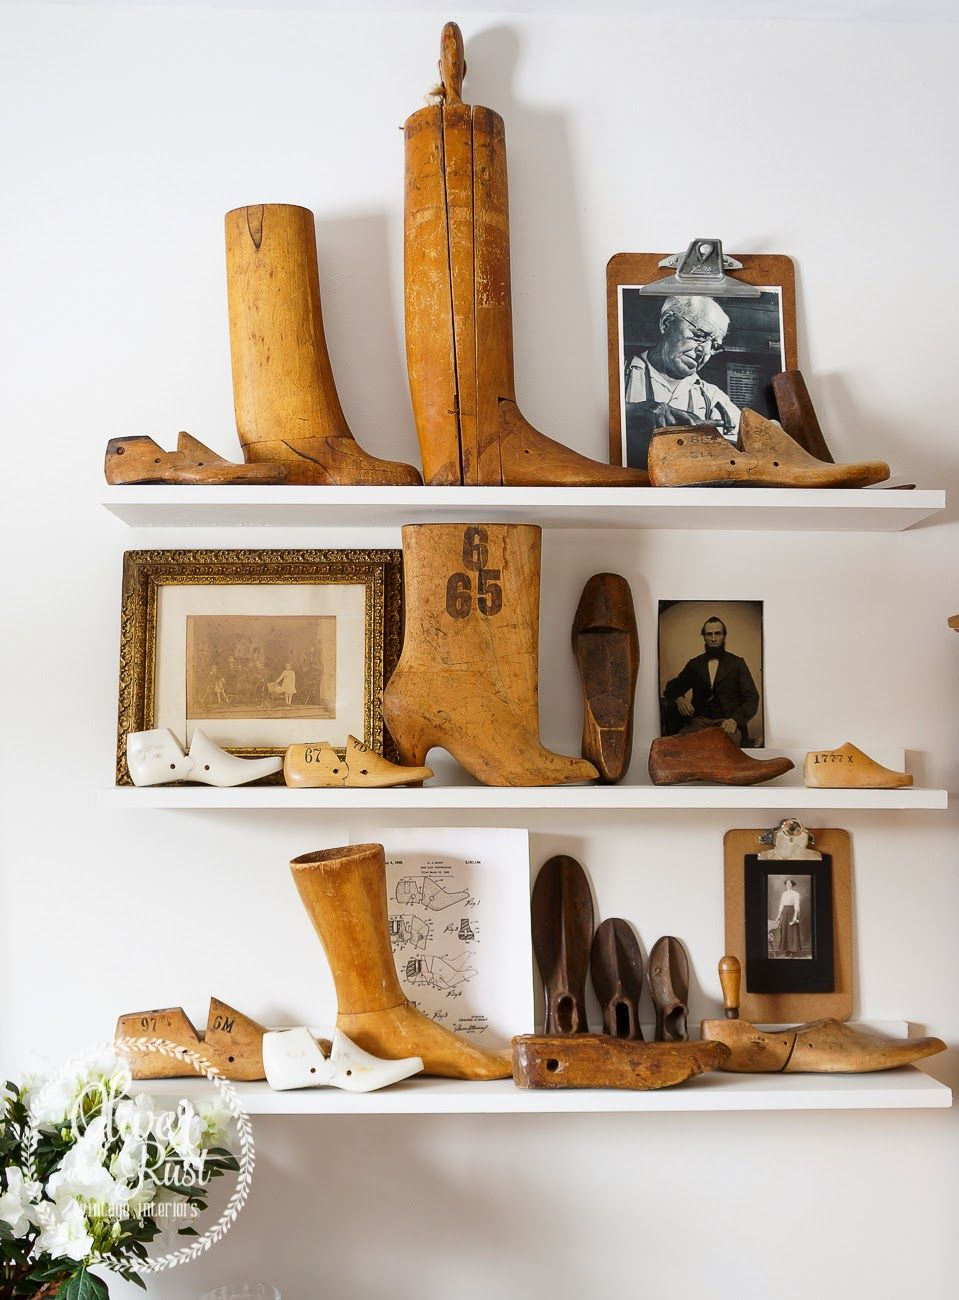 Bedroom Boards Collection i love this collection of shoe forms in this bedroom remake. she